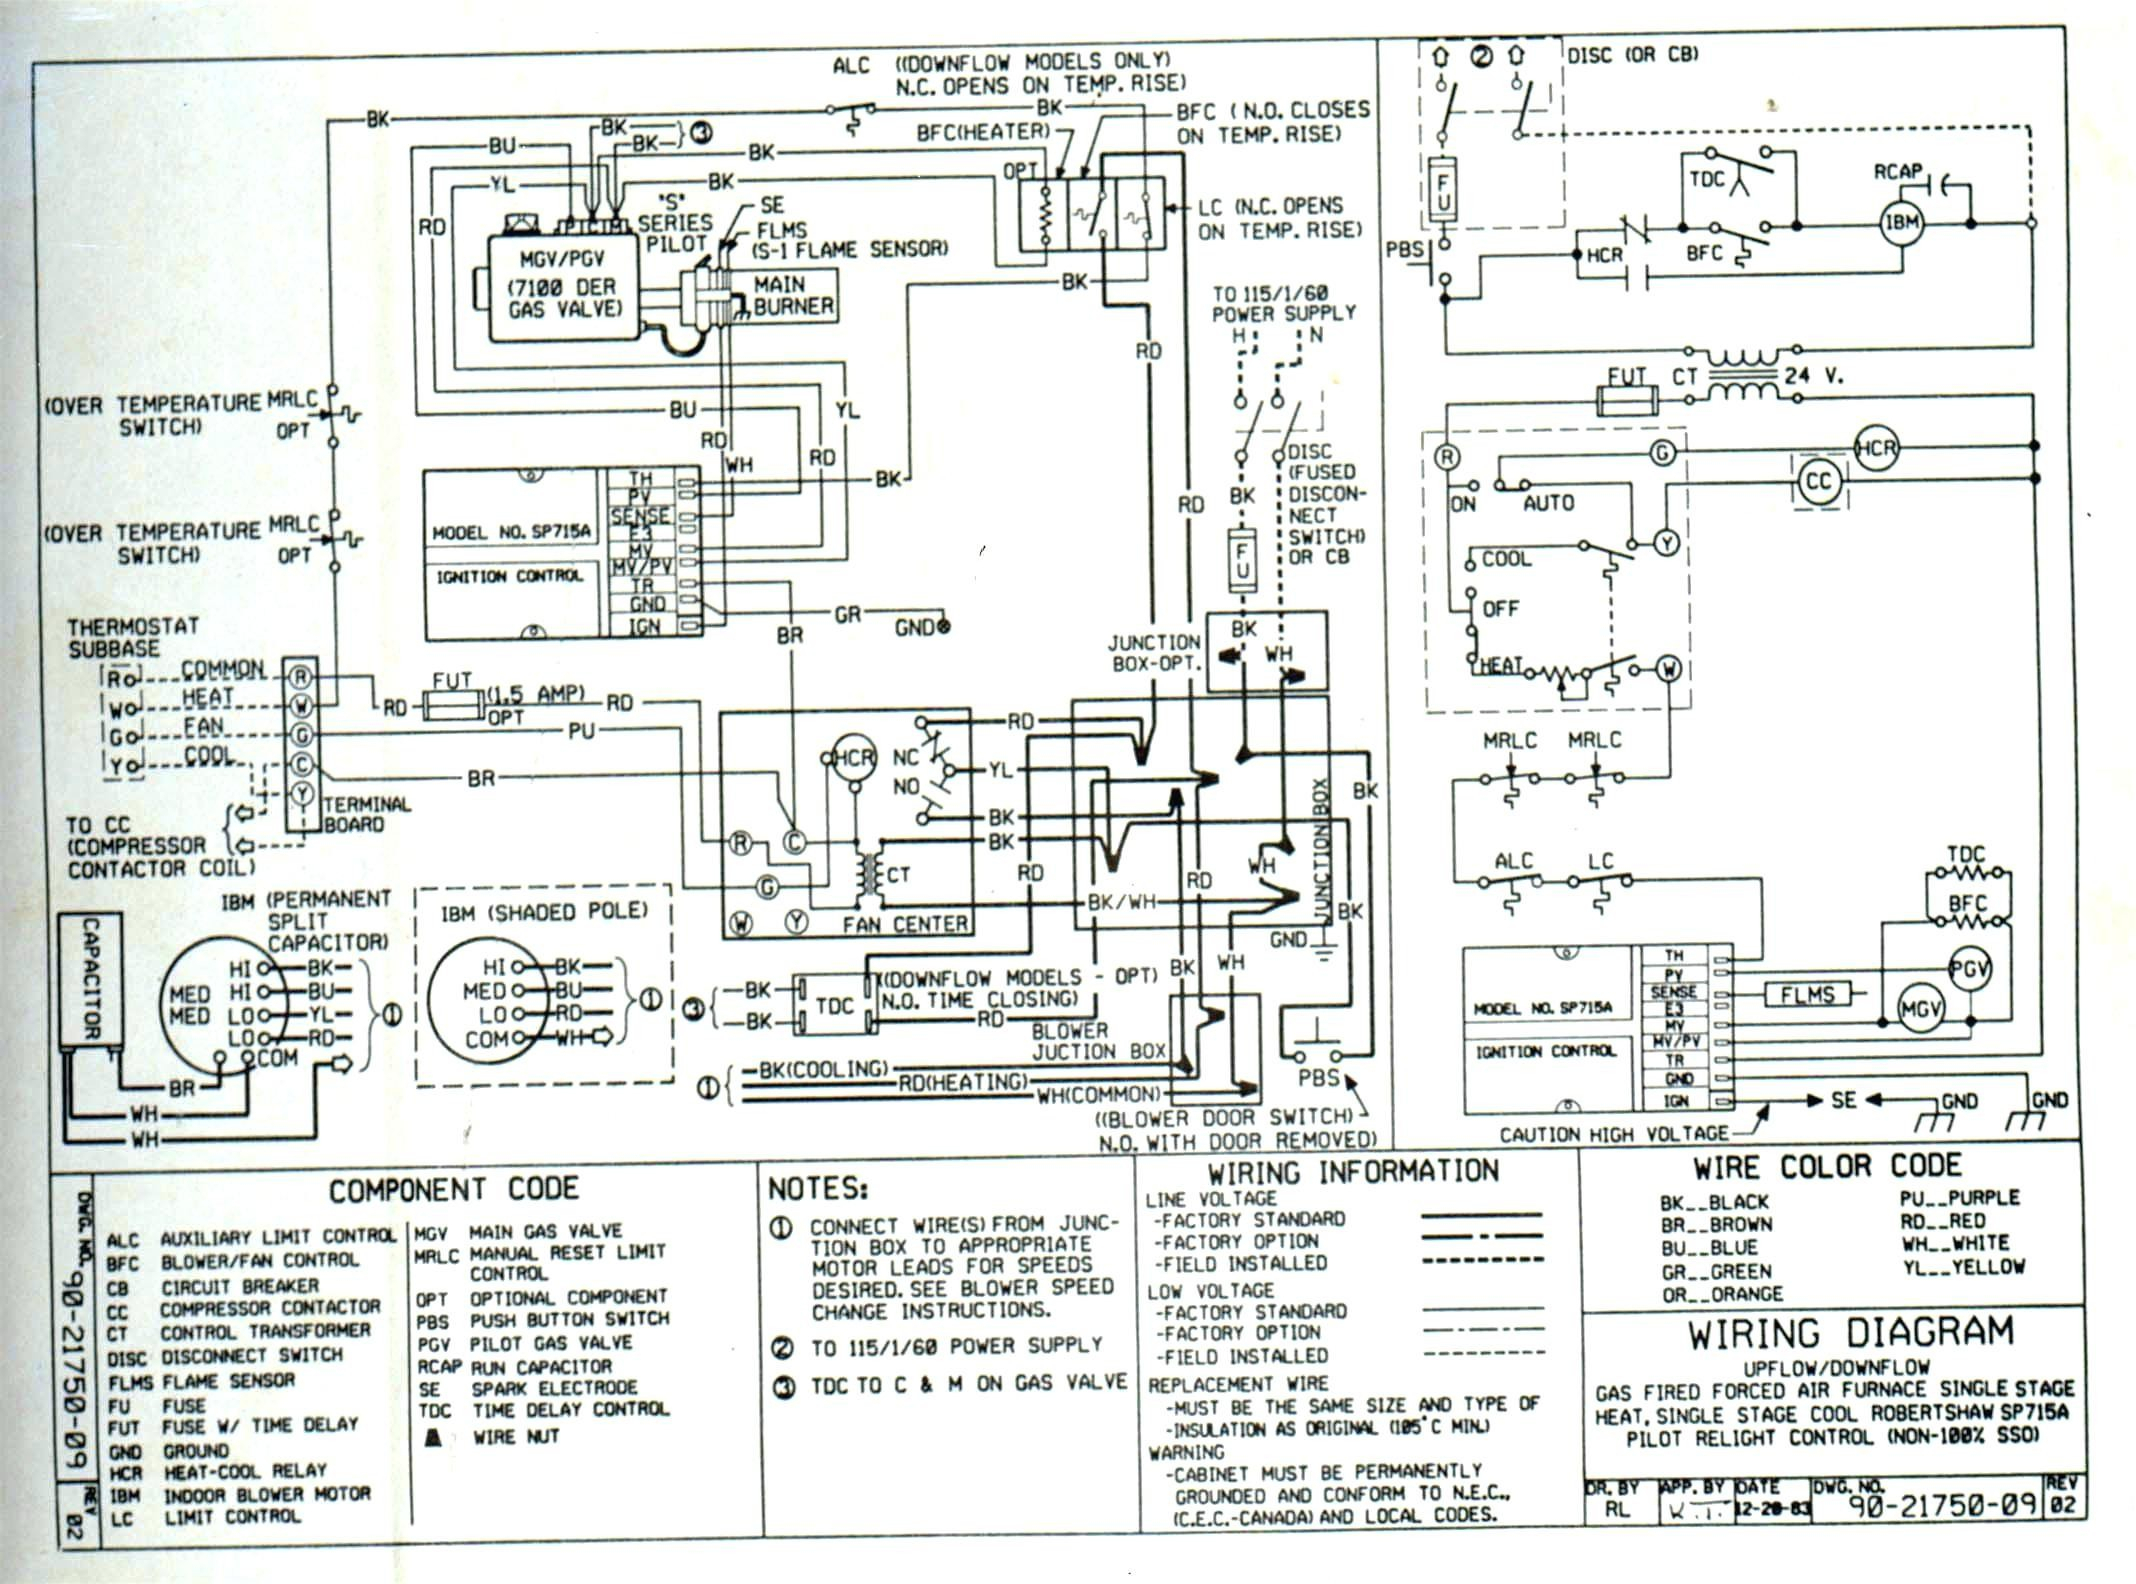 carrier rooftop unit wiring diagram